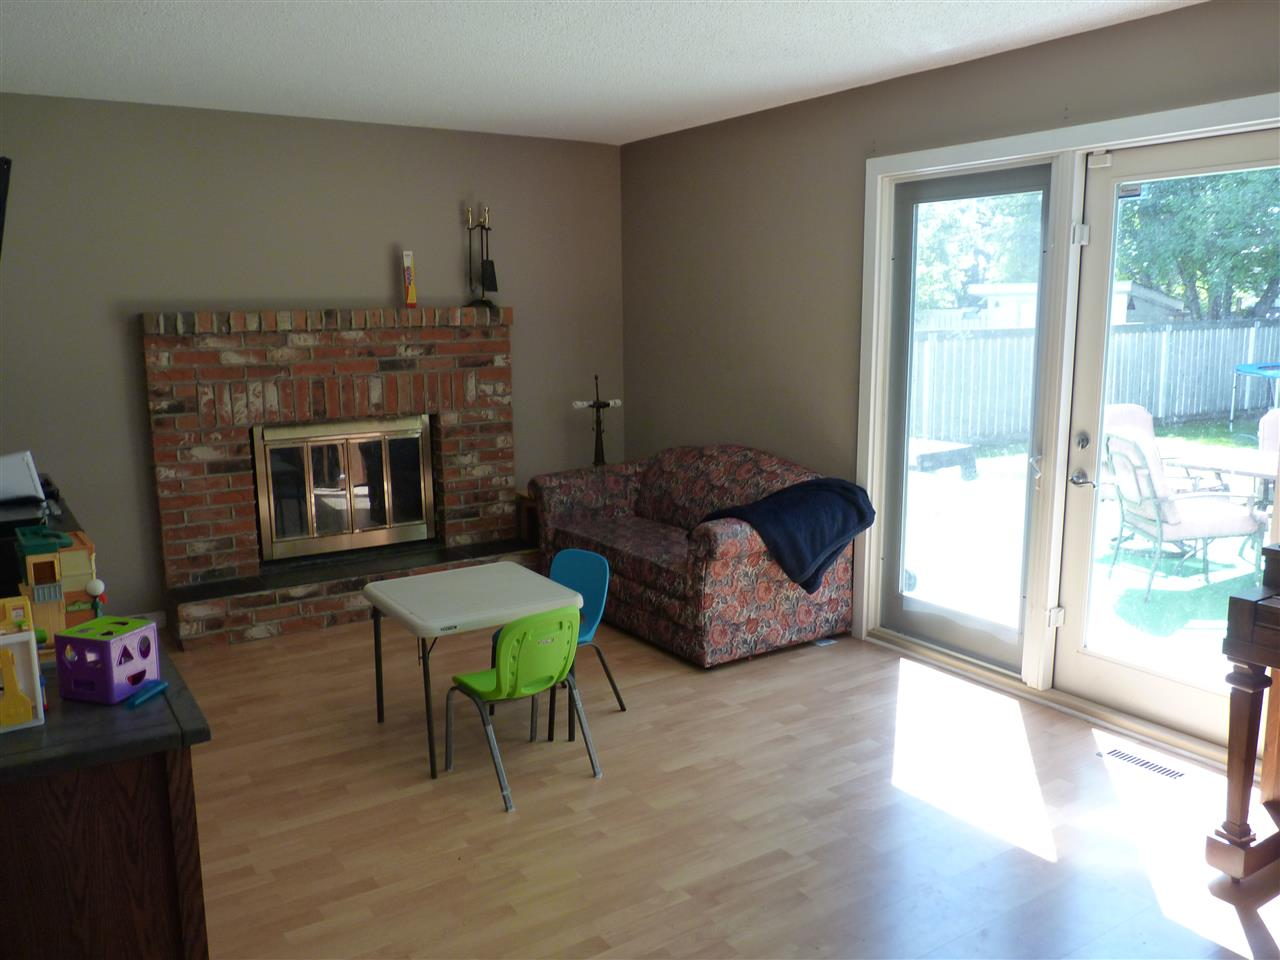 Bright room also with hardwood.  Patio doors to the back yard.